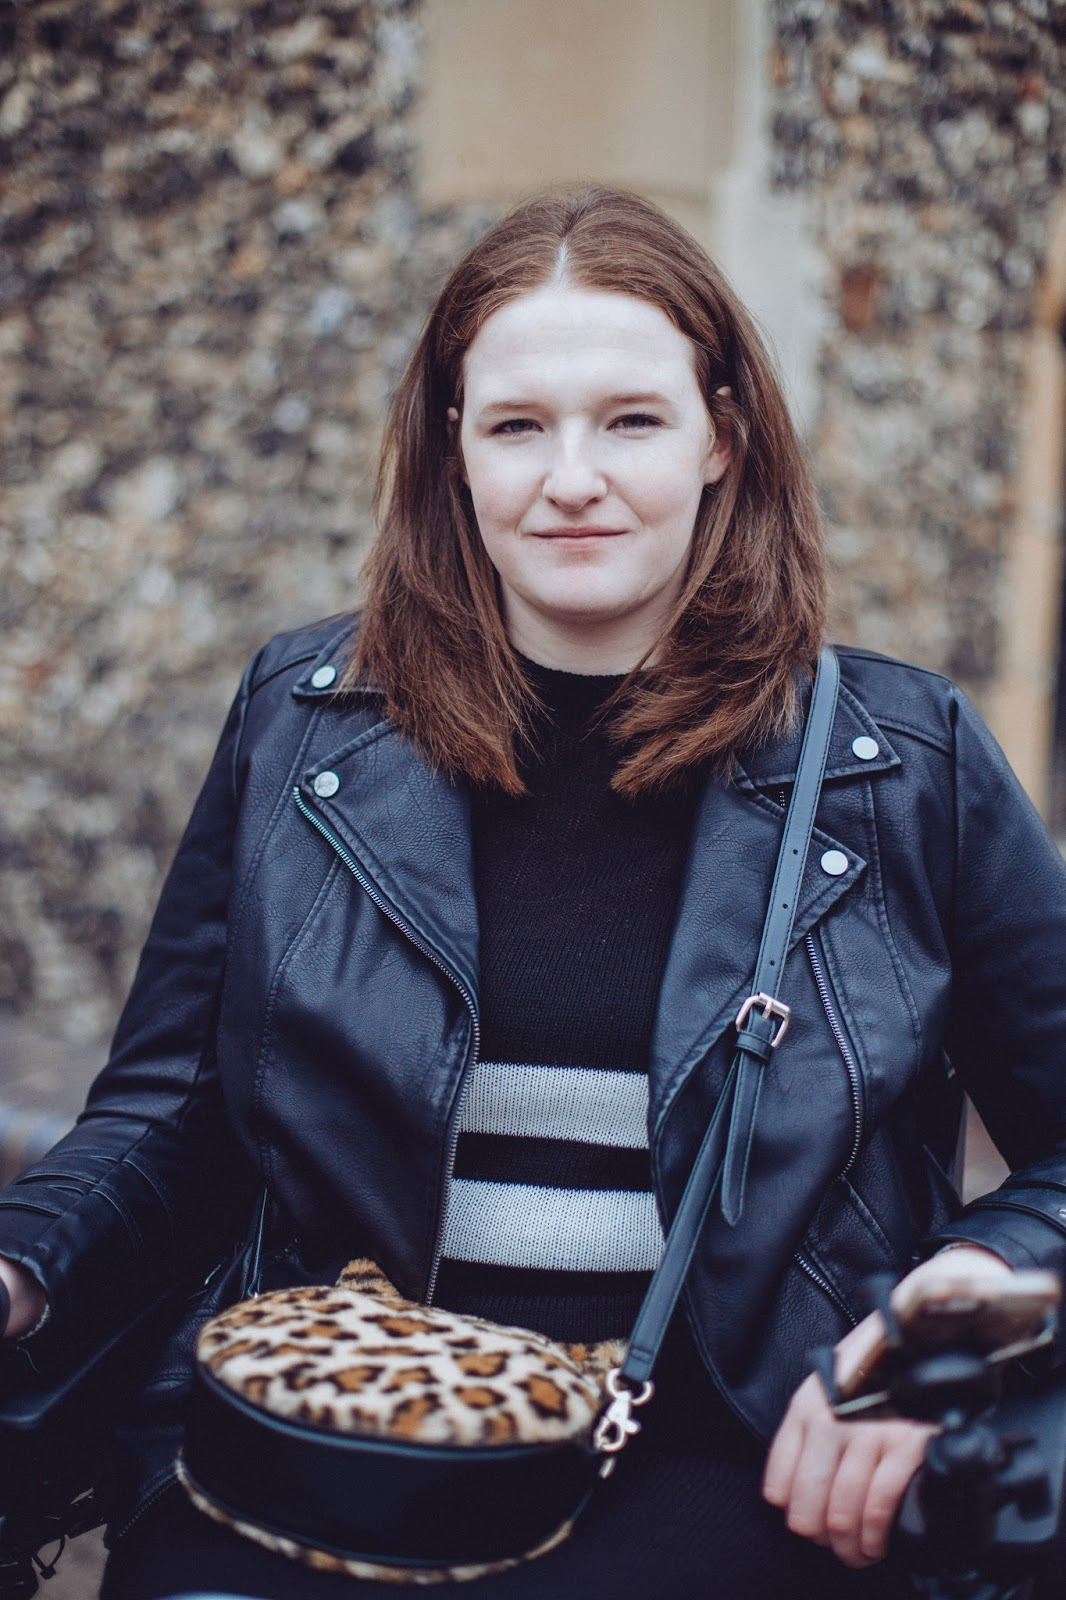 Up close image of Shona with a small smile on her face. Her hair is down and straight, she is wearing a black dress, leather look jacket and a leopard print bag.